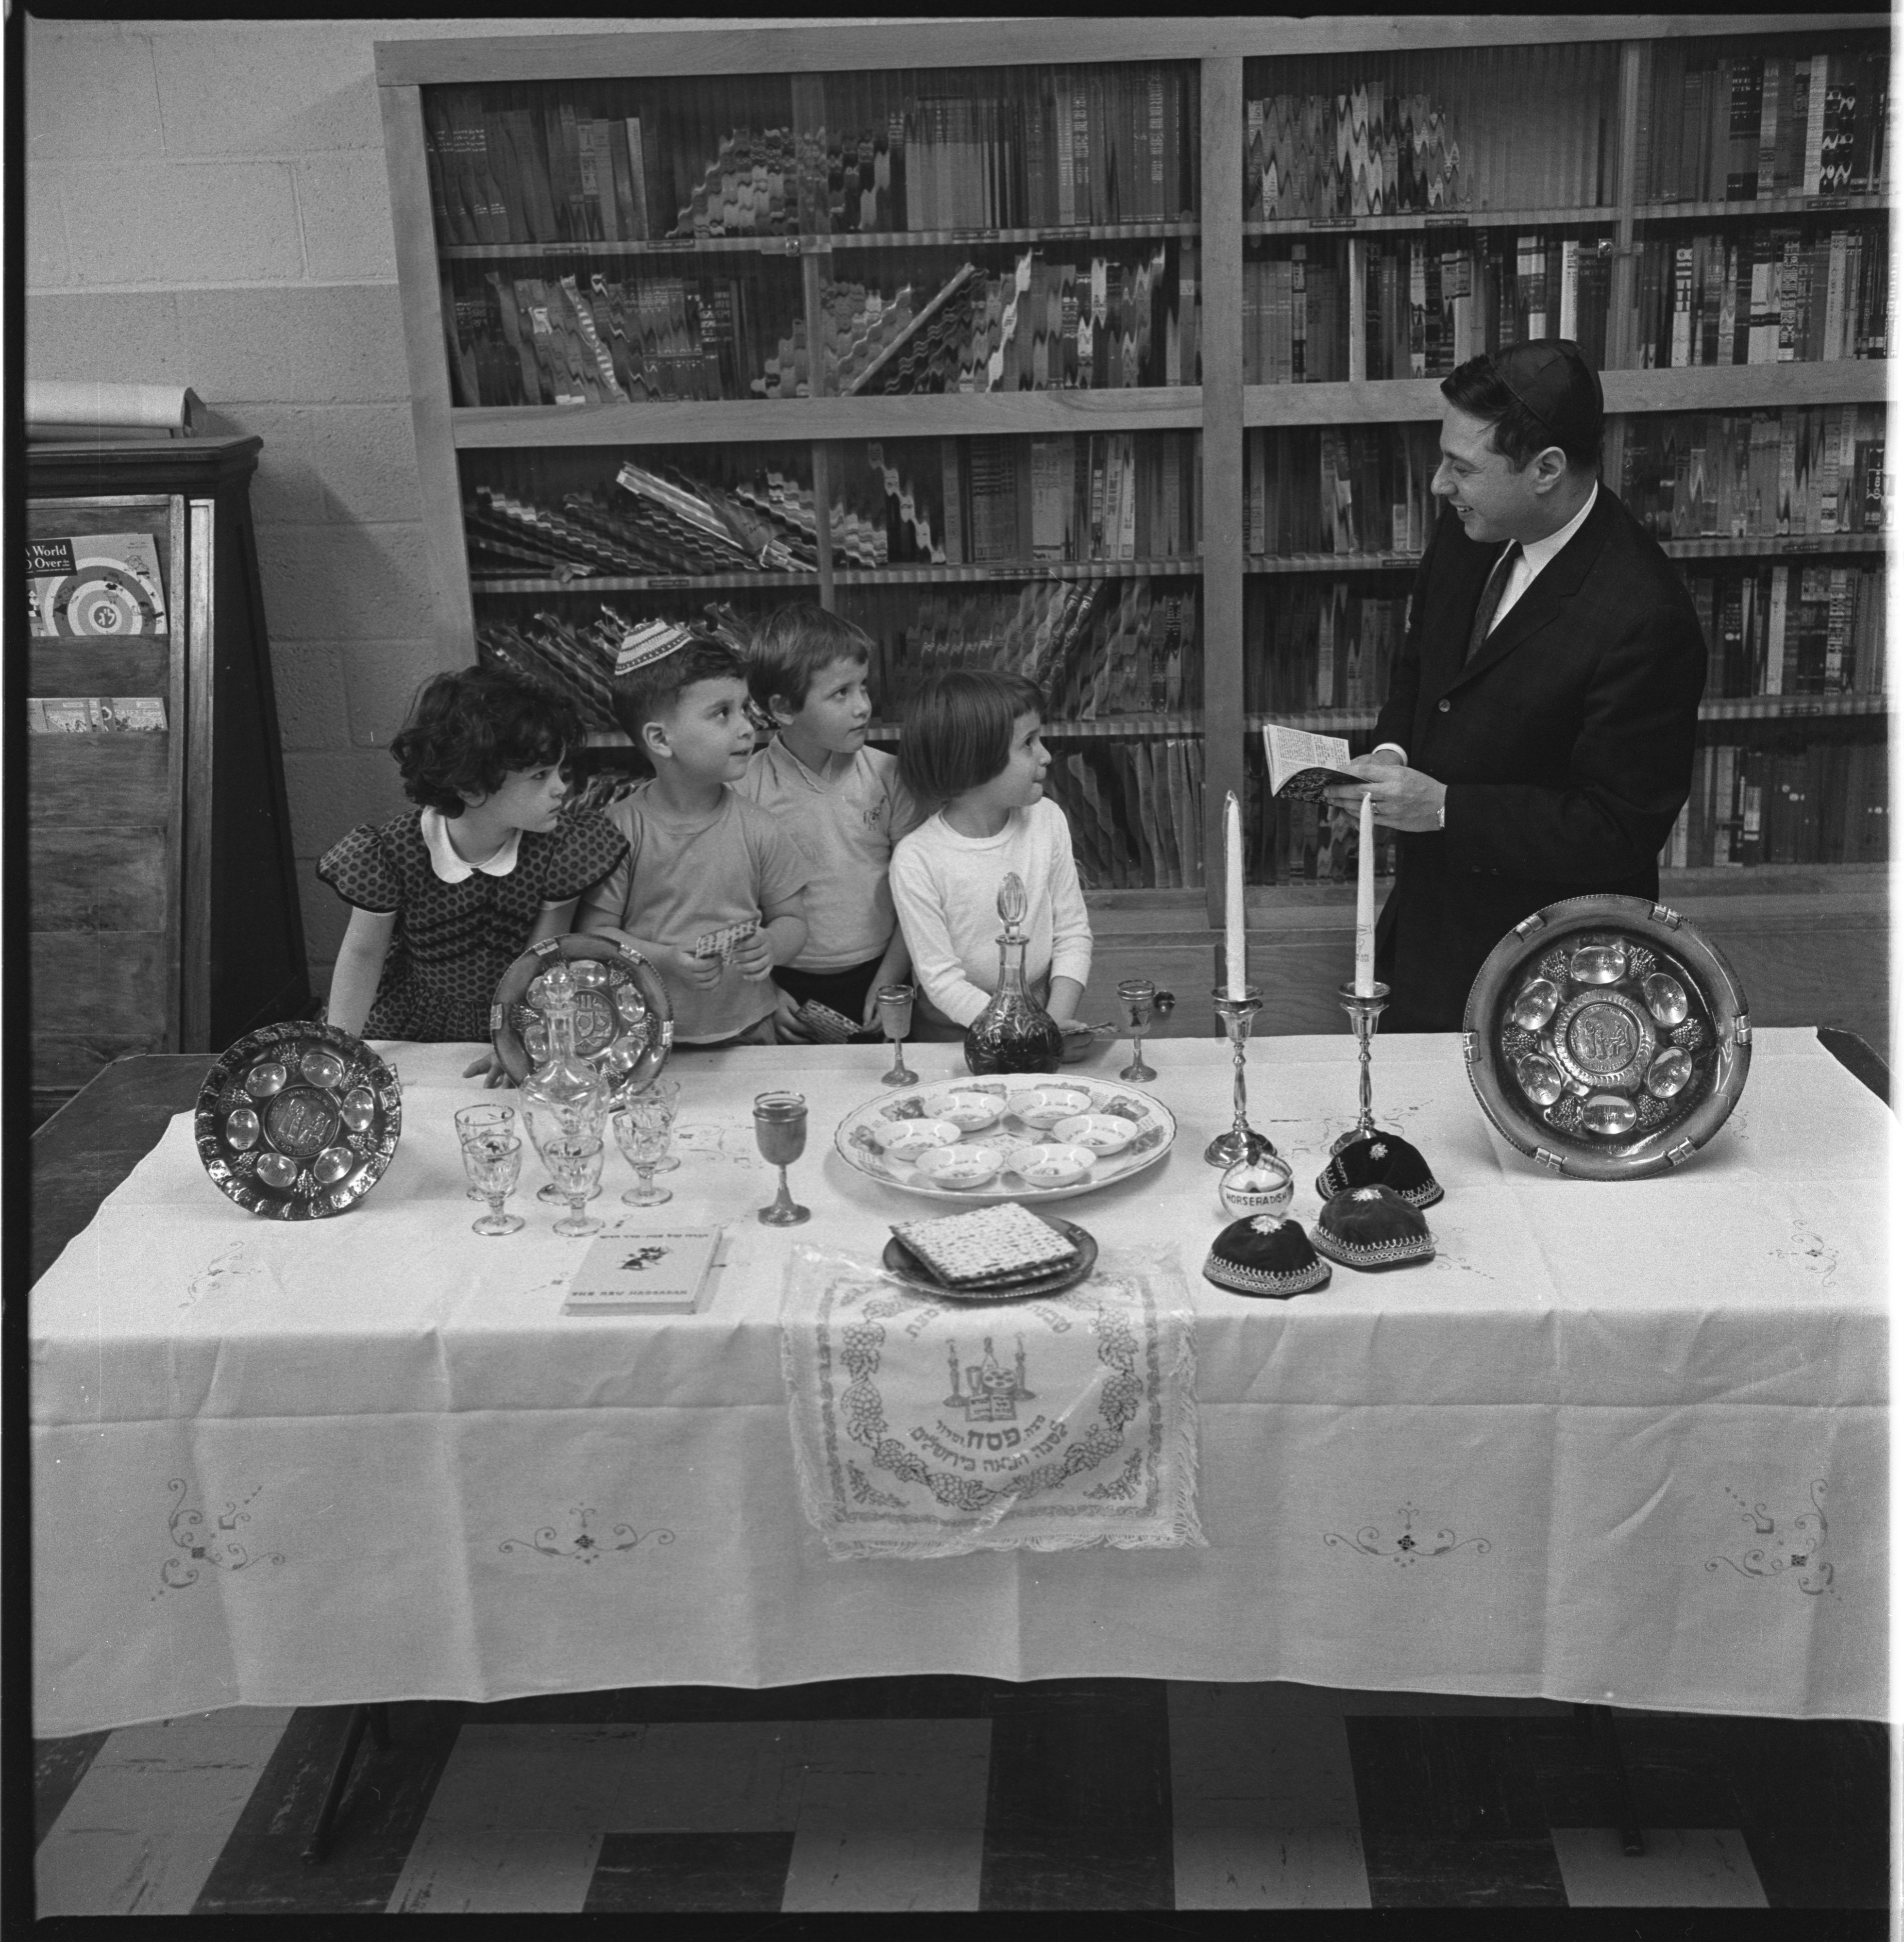 Rabbi Harold White Reads To Children From The Haggadah, April 1963 image